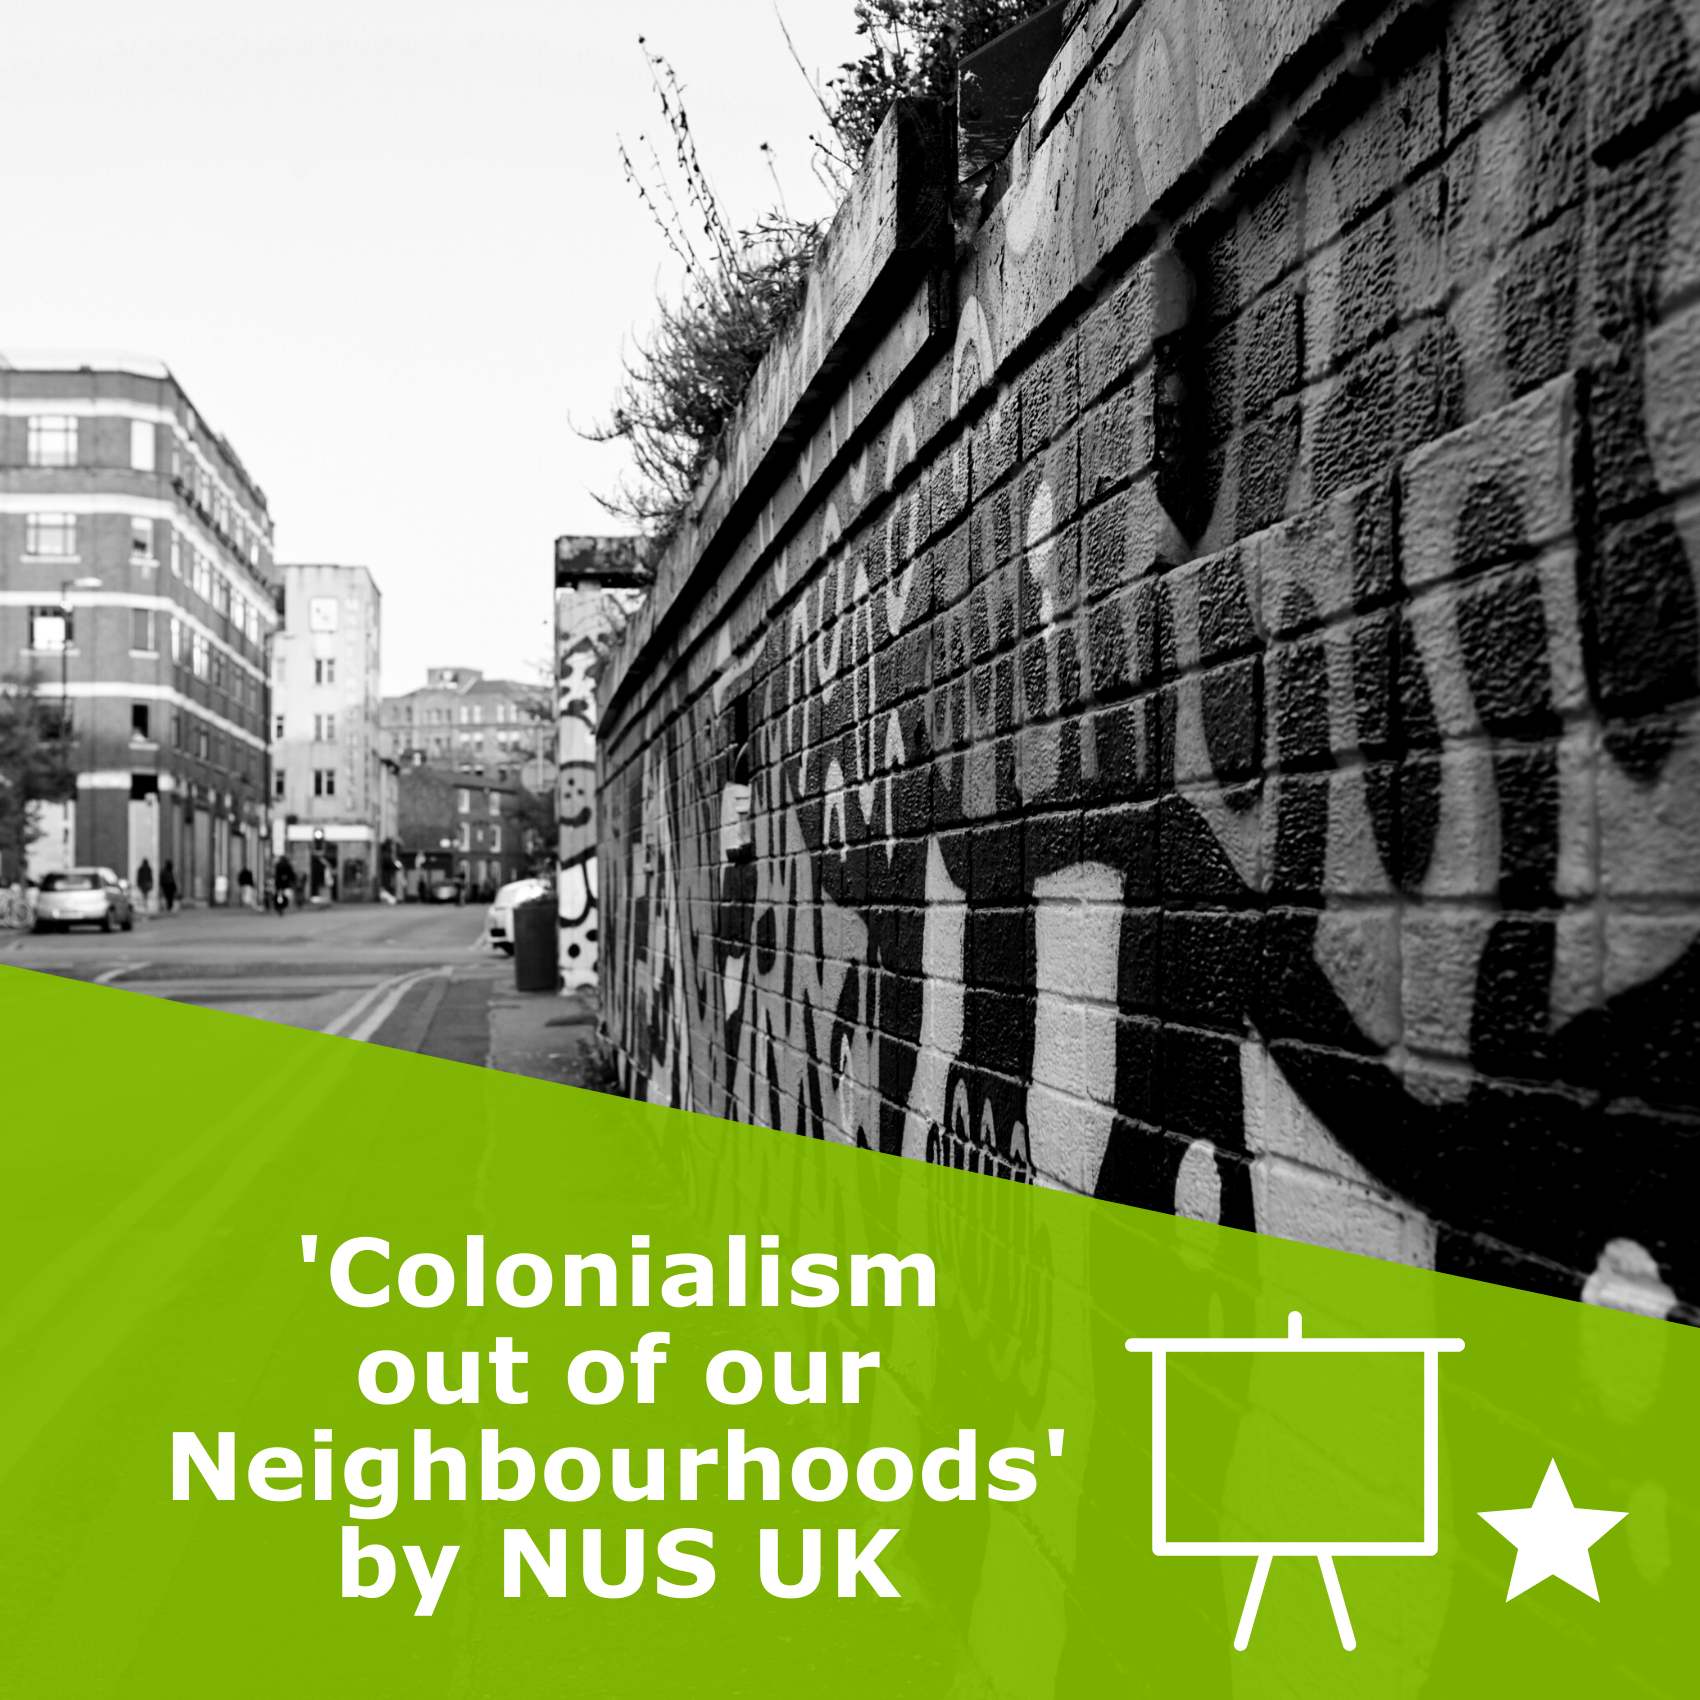 Picture of a street in Manchester. Title Colonialism out of our Neighbourhood. It is an presentation by NUS UK rated 1 star